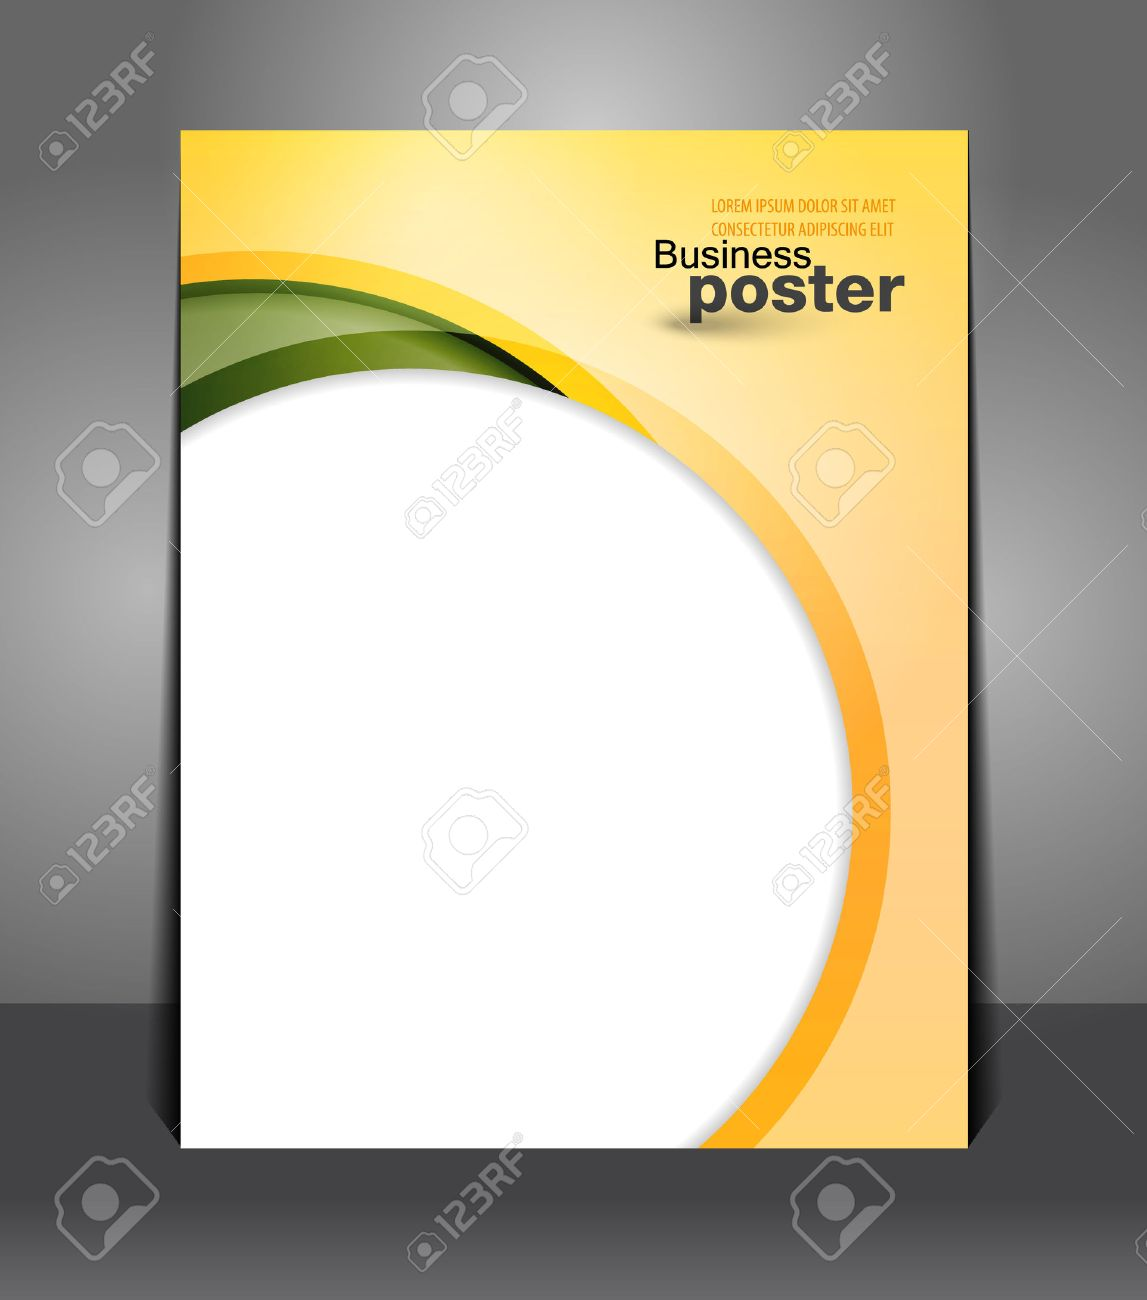 stylish presentation of business poster flyer design content stylish presentation of business poster flyer design content design layout template stock vector